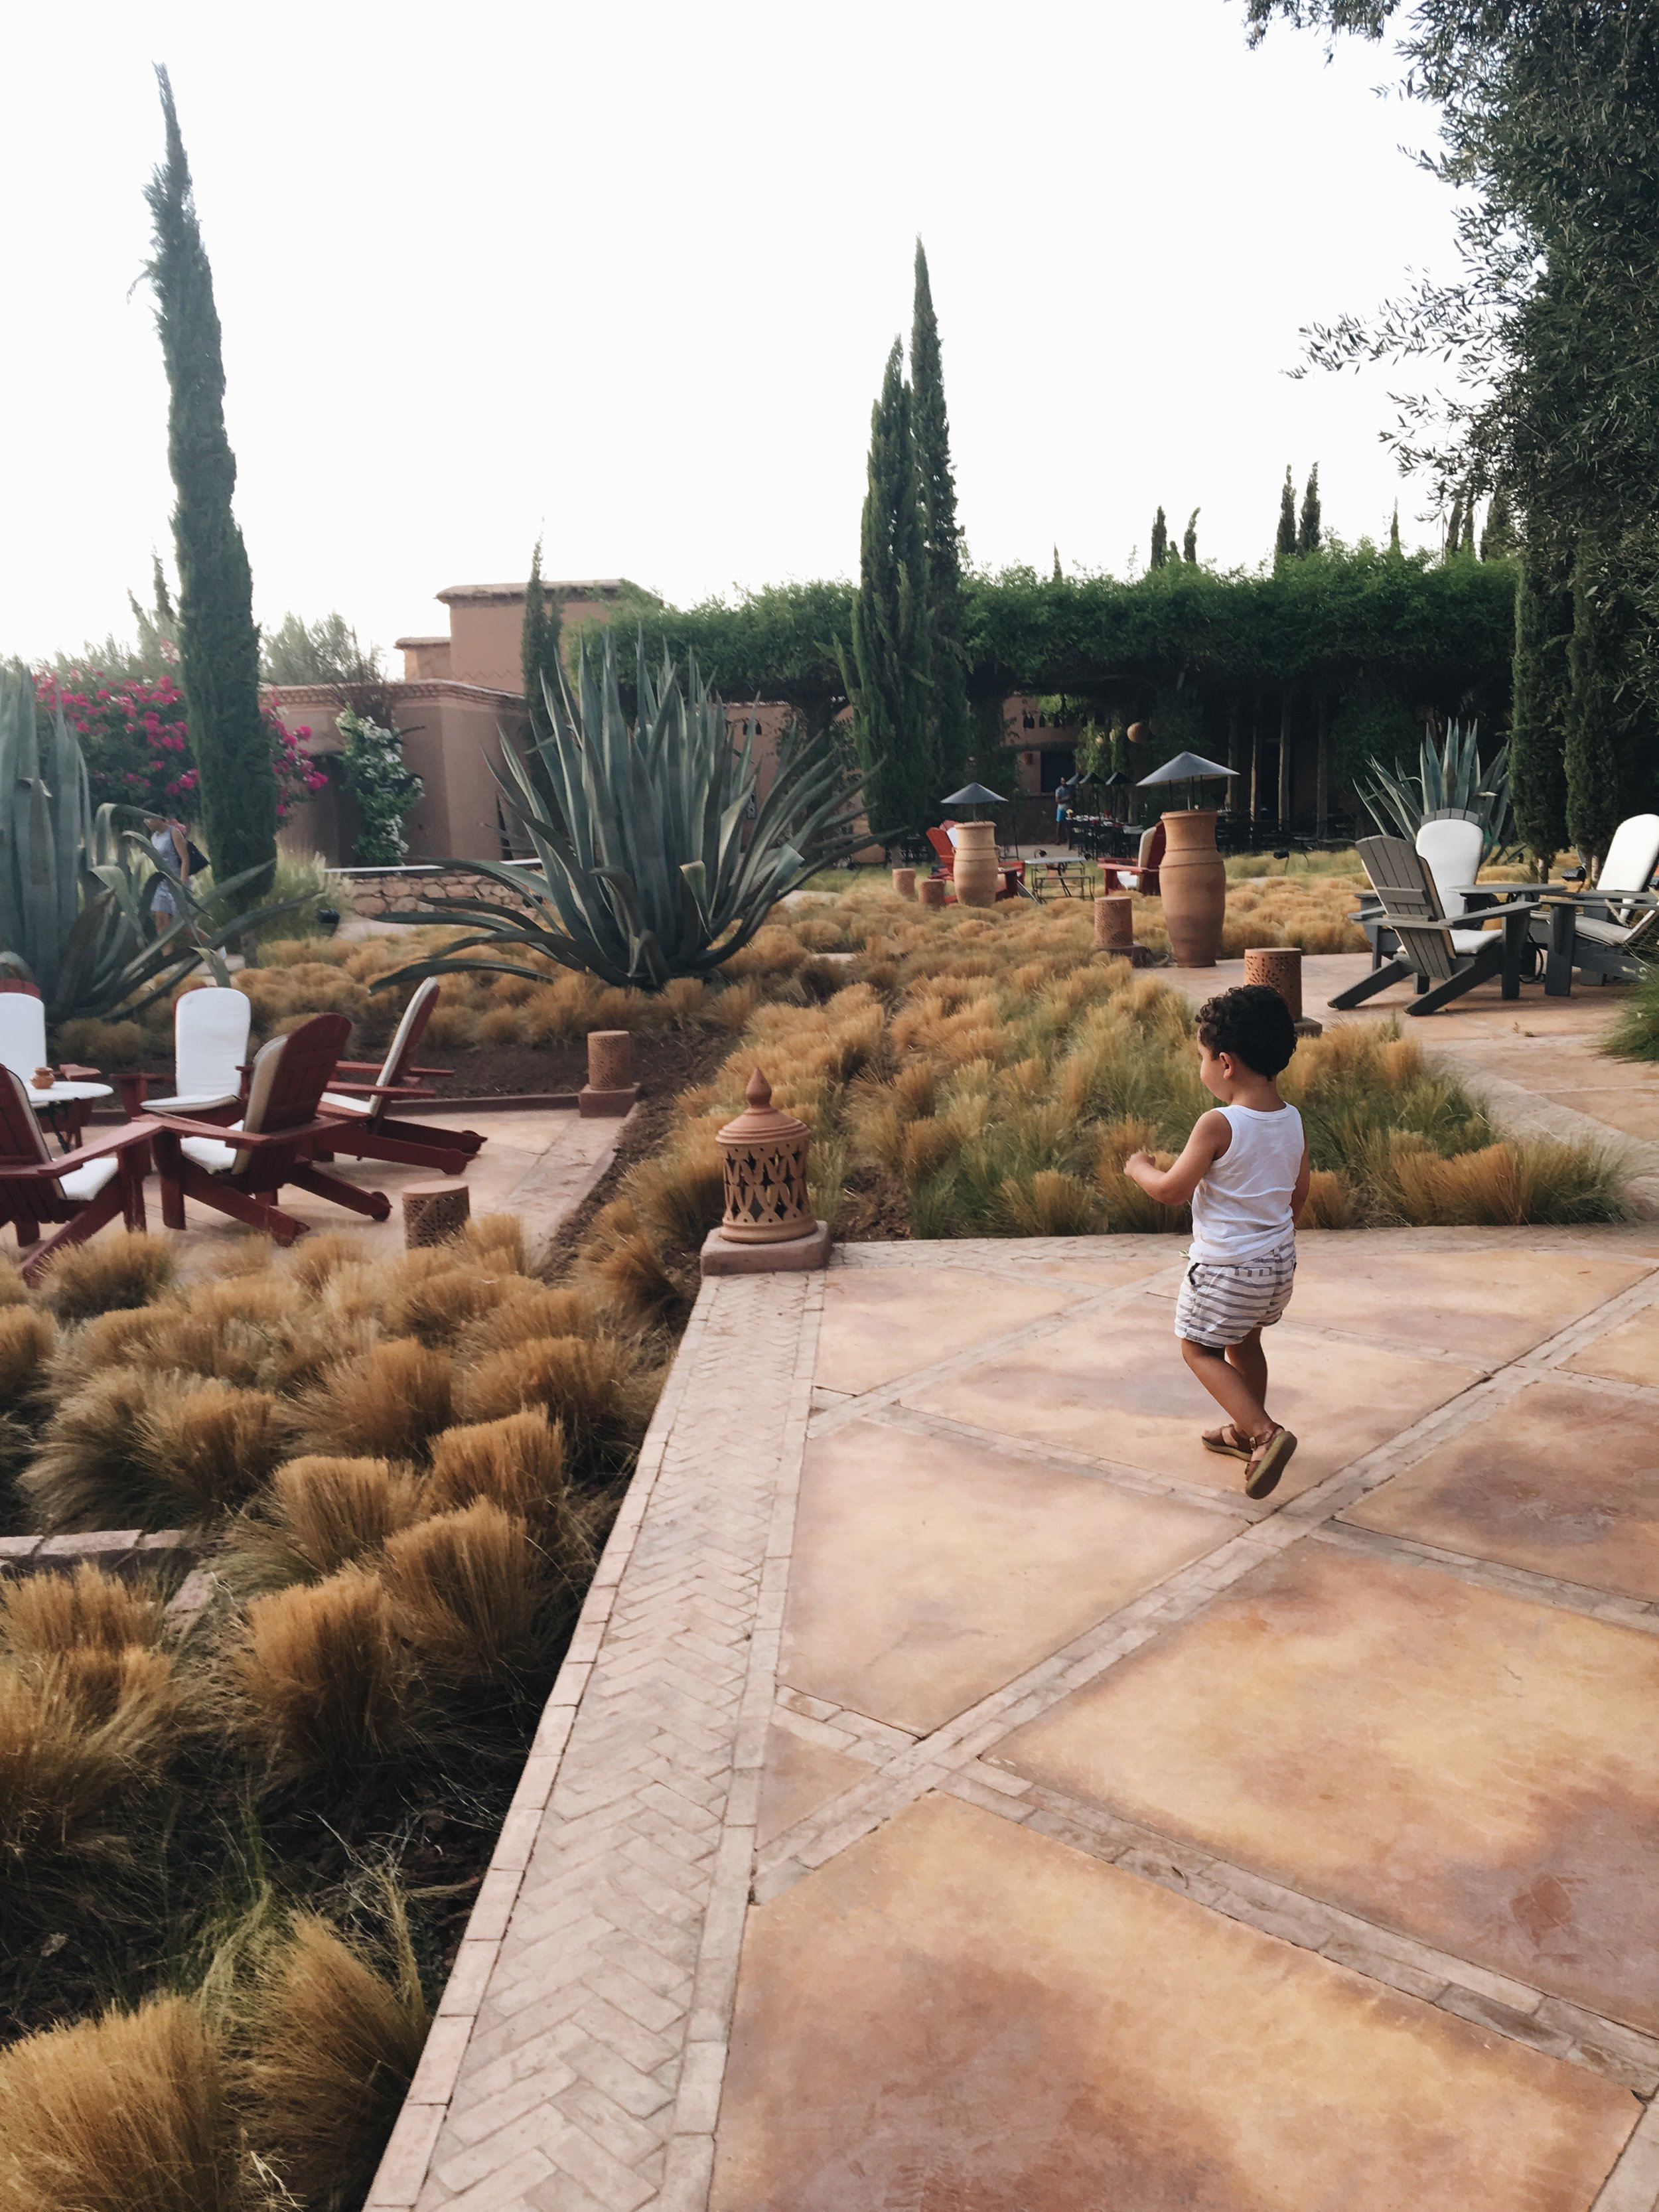 The Beldi Country Club restaurant gardens | Marrakech